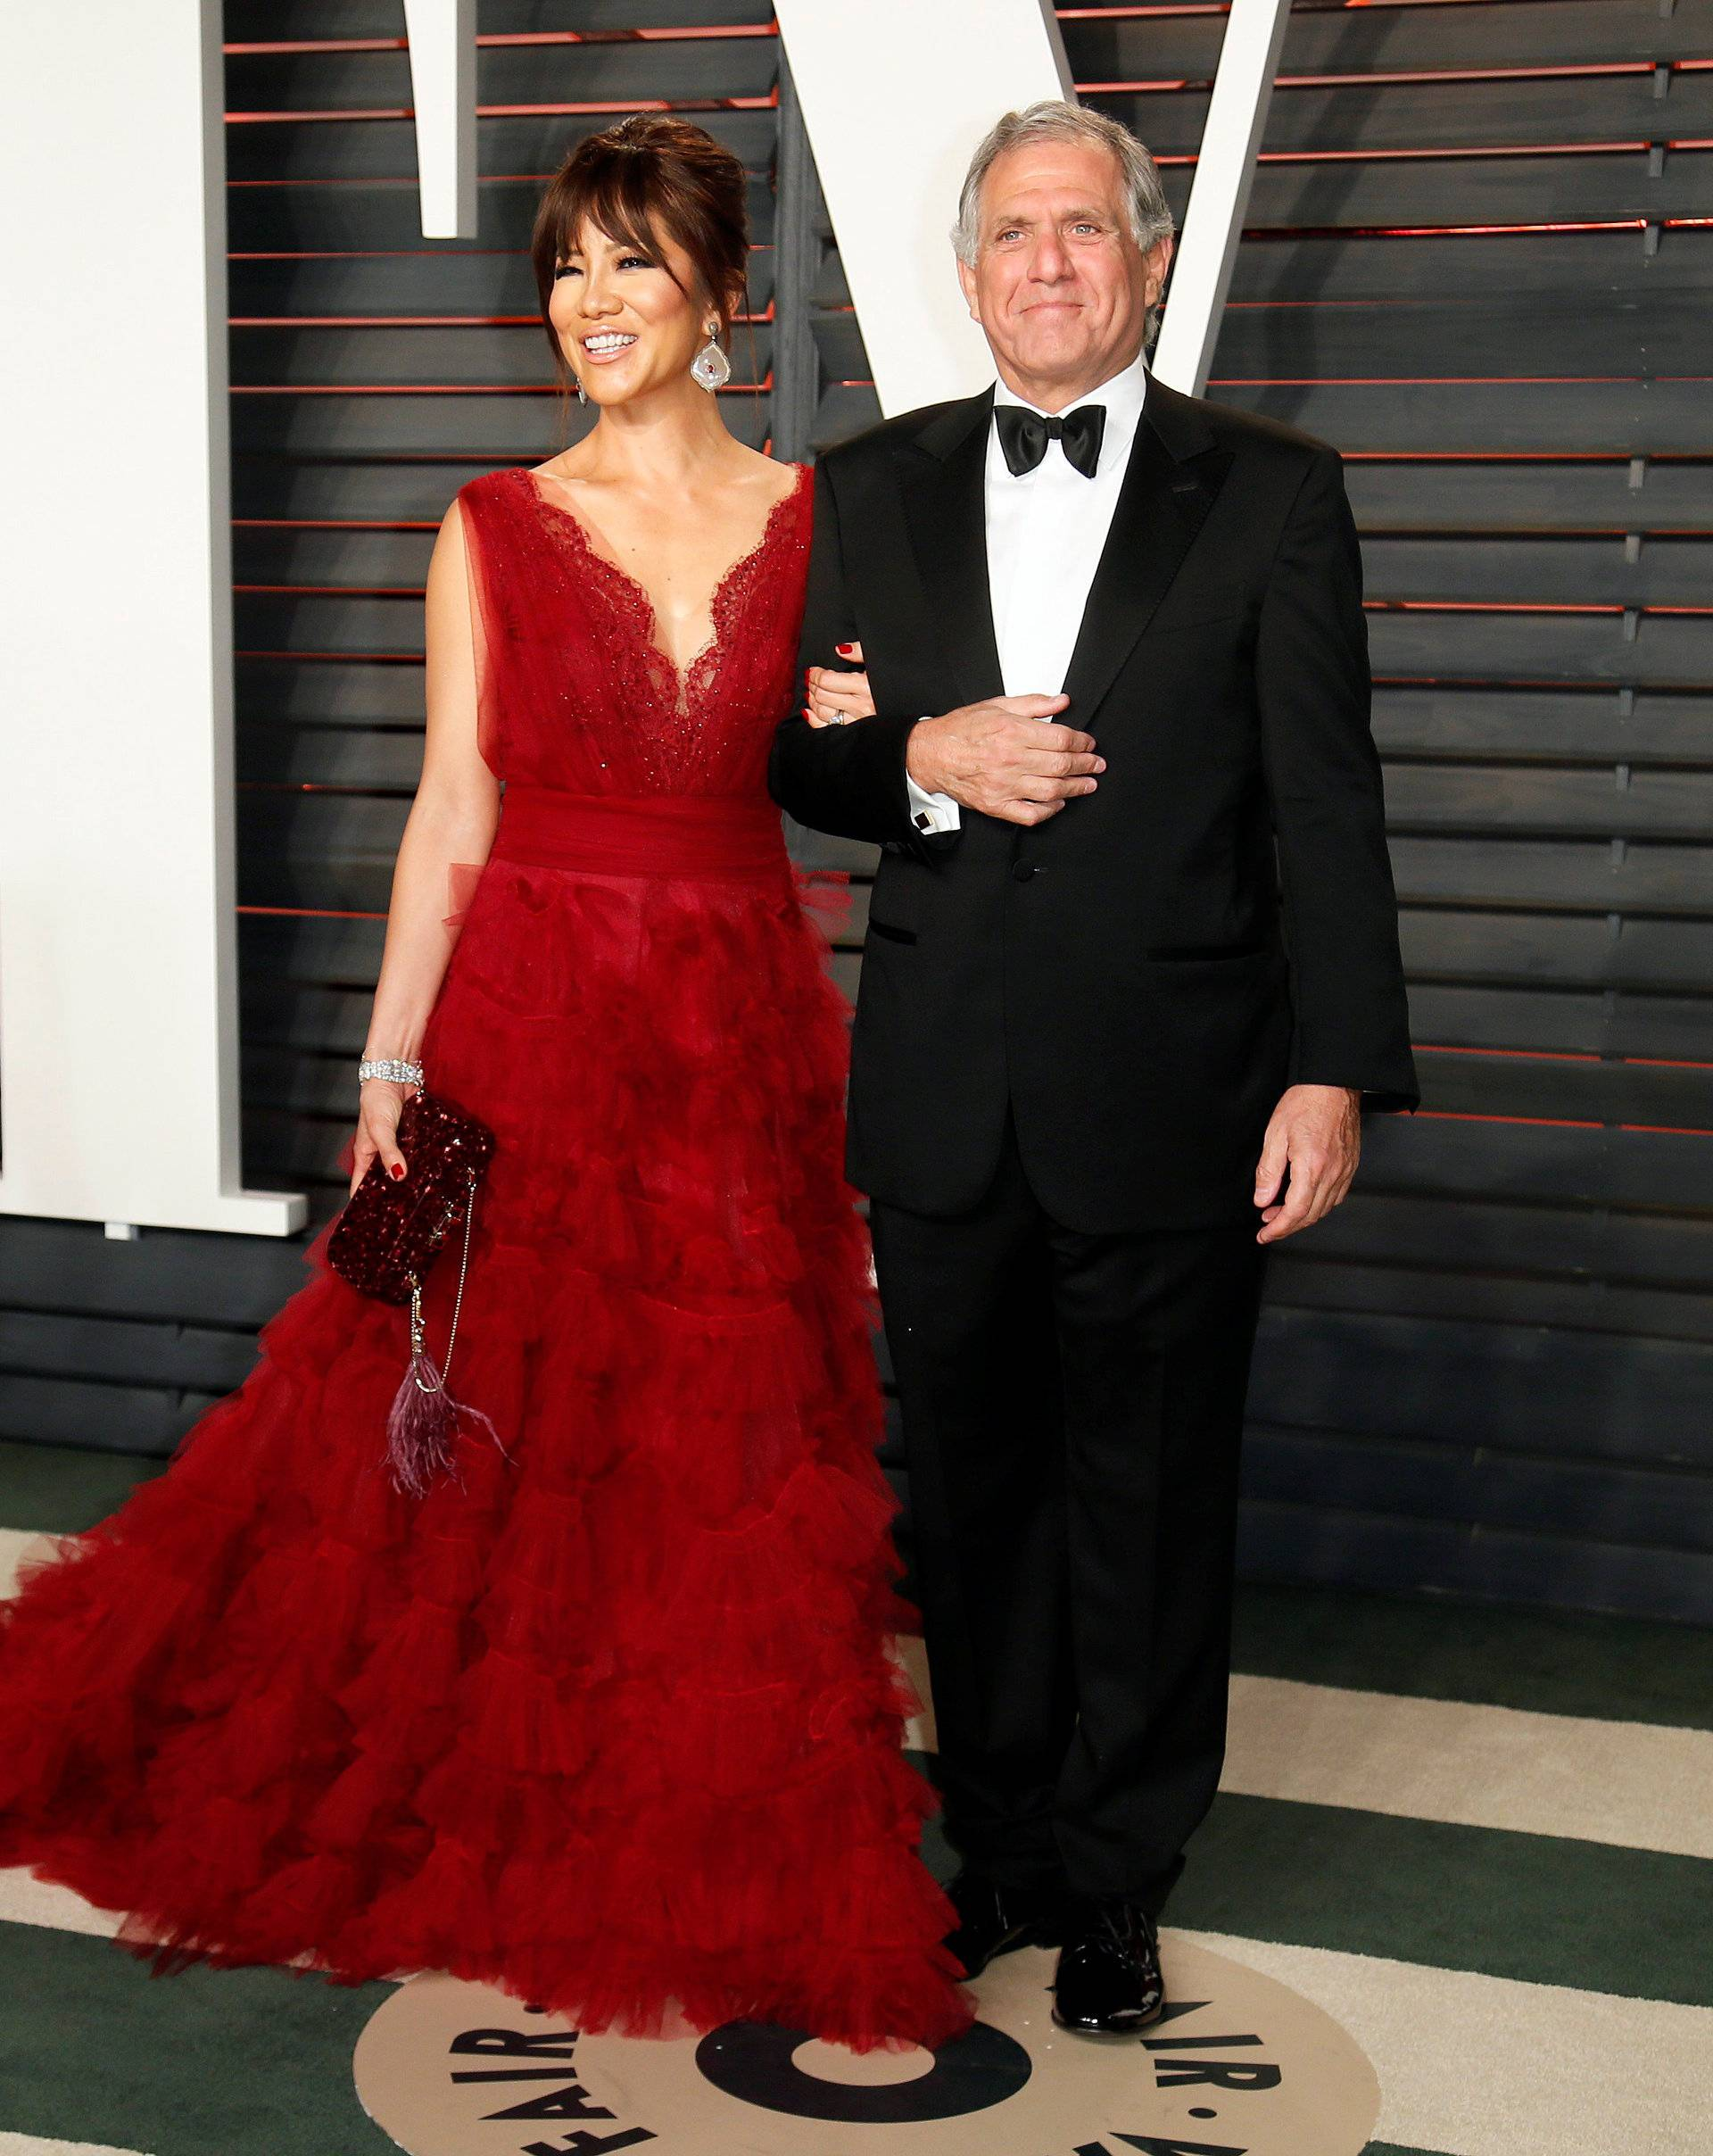 FILE PHOTO: Les Moonves and his wife, Julie Chen, arrive at the Vanity Fair Oscar Party in Beverly Hills